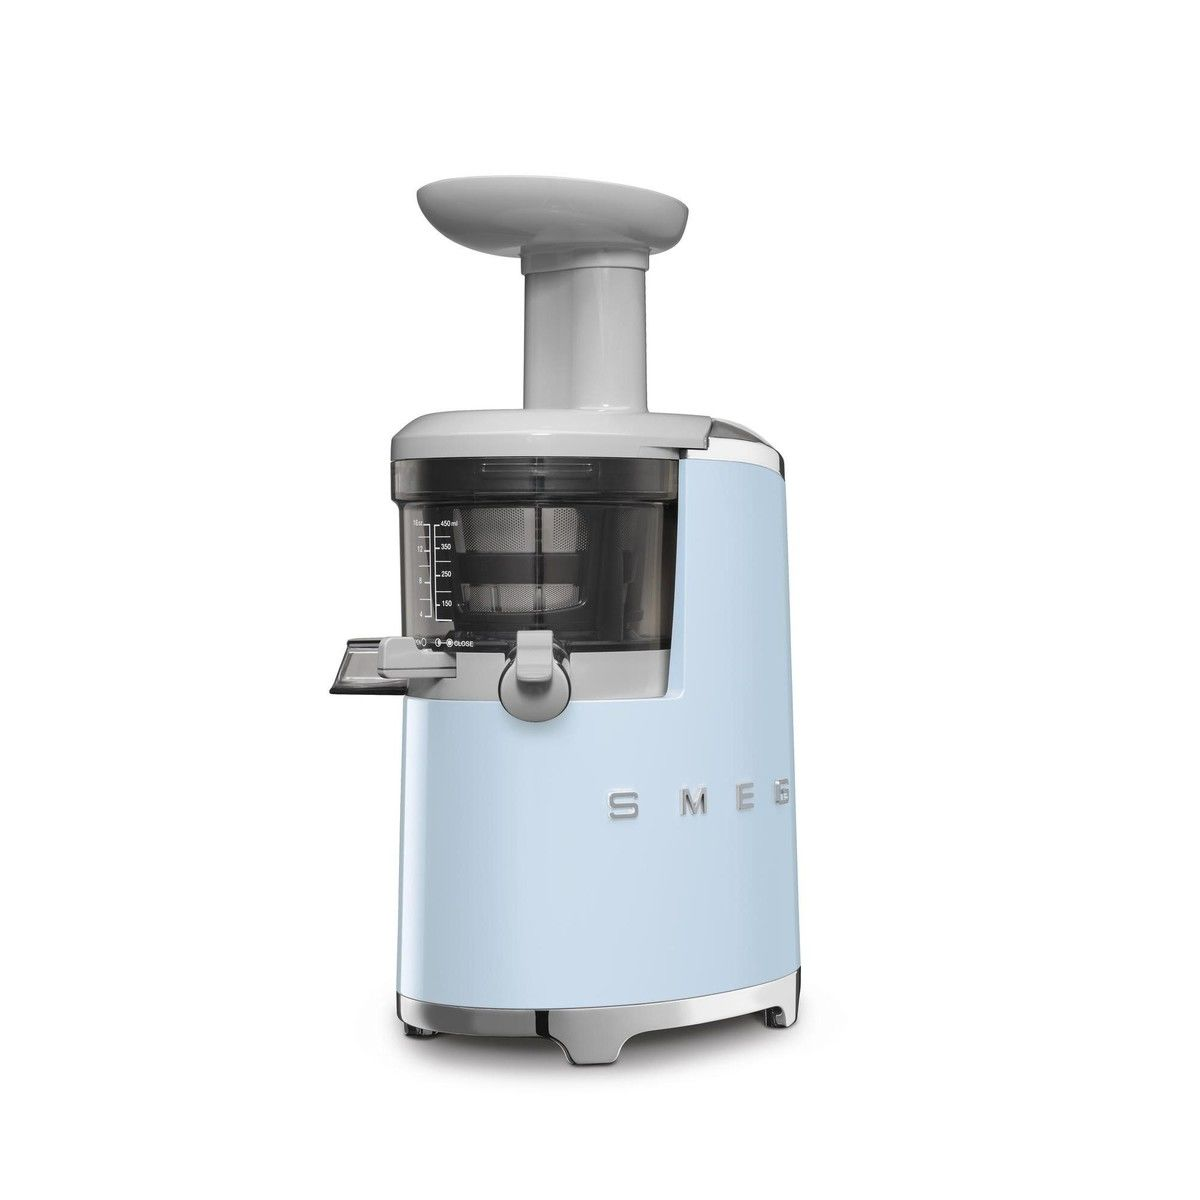 Best Brand For Slow Juicer : SJF01 Slow Juicer Smeg AmbienteDirect.com